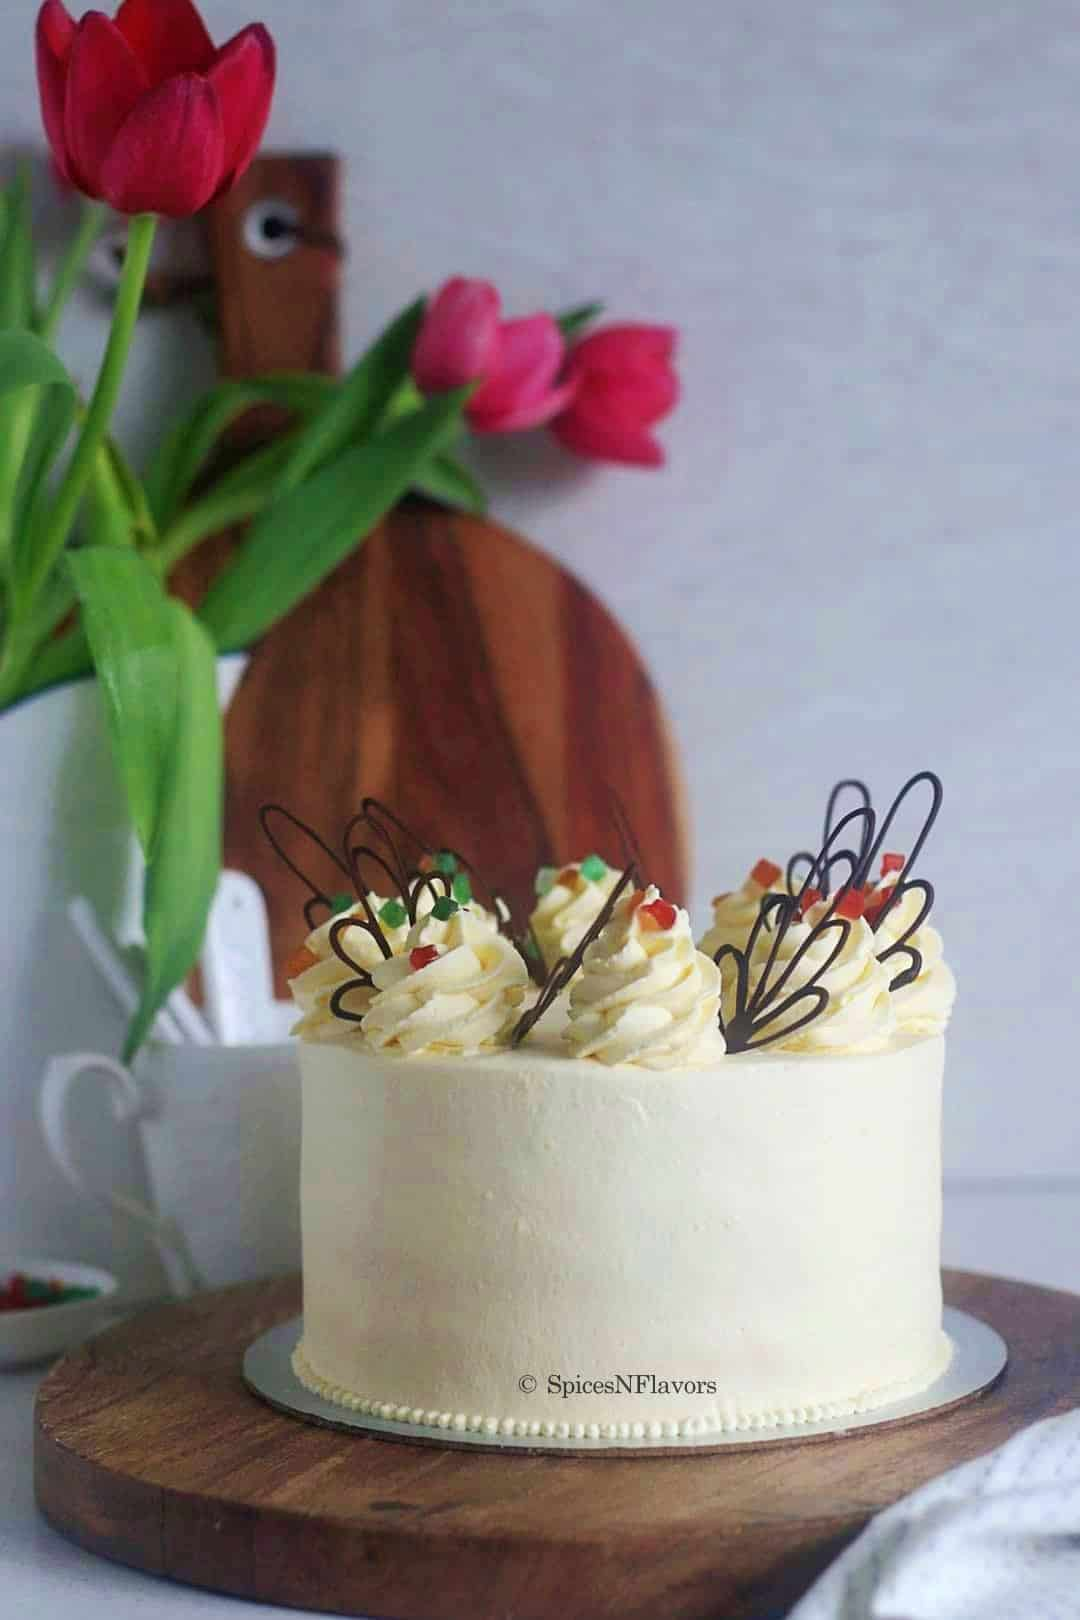 pineapple cake placed on a round wooden board with flowers in the background